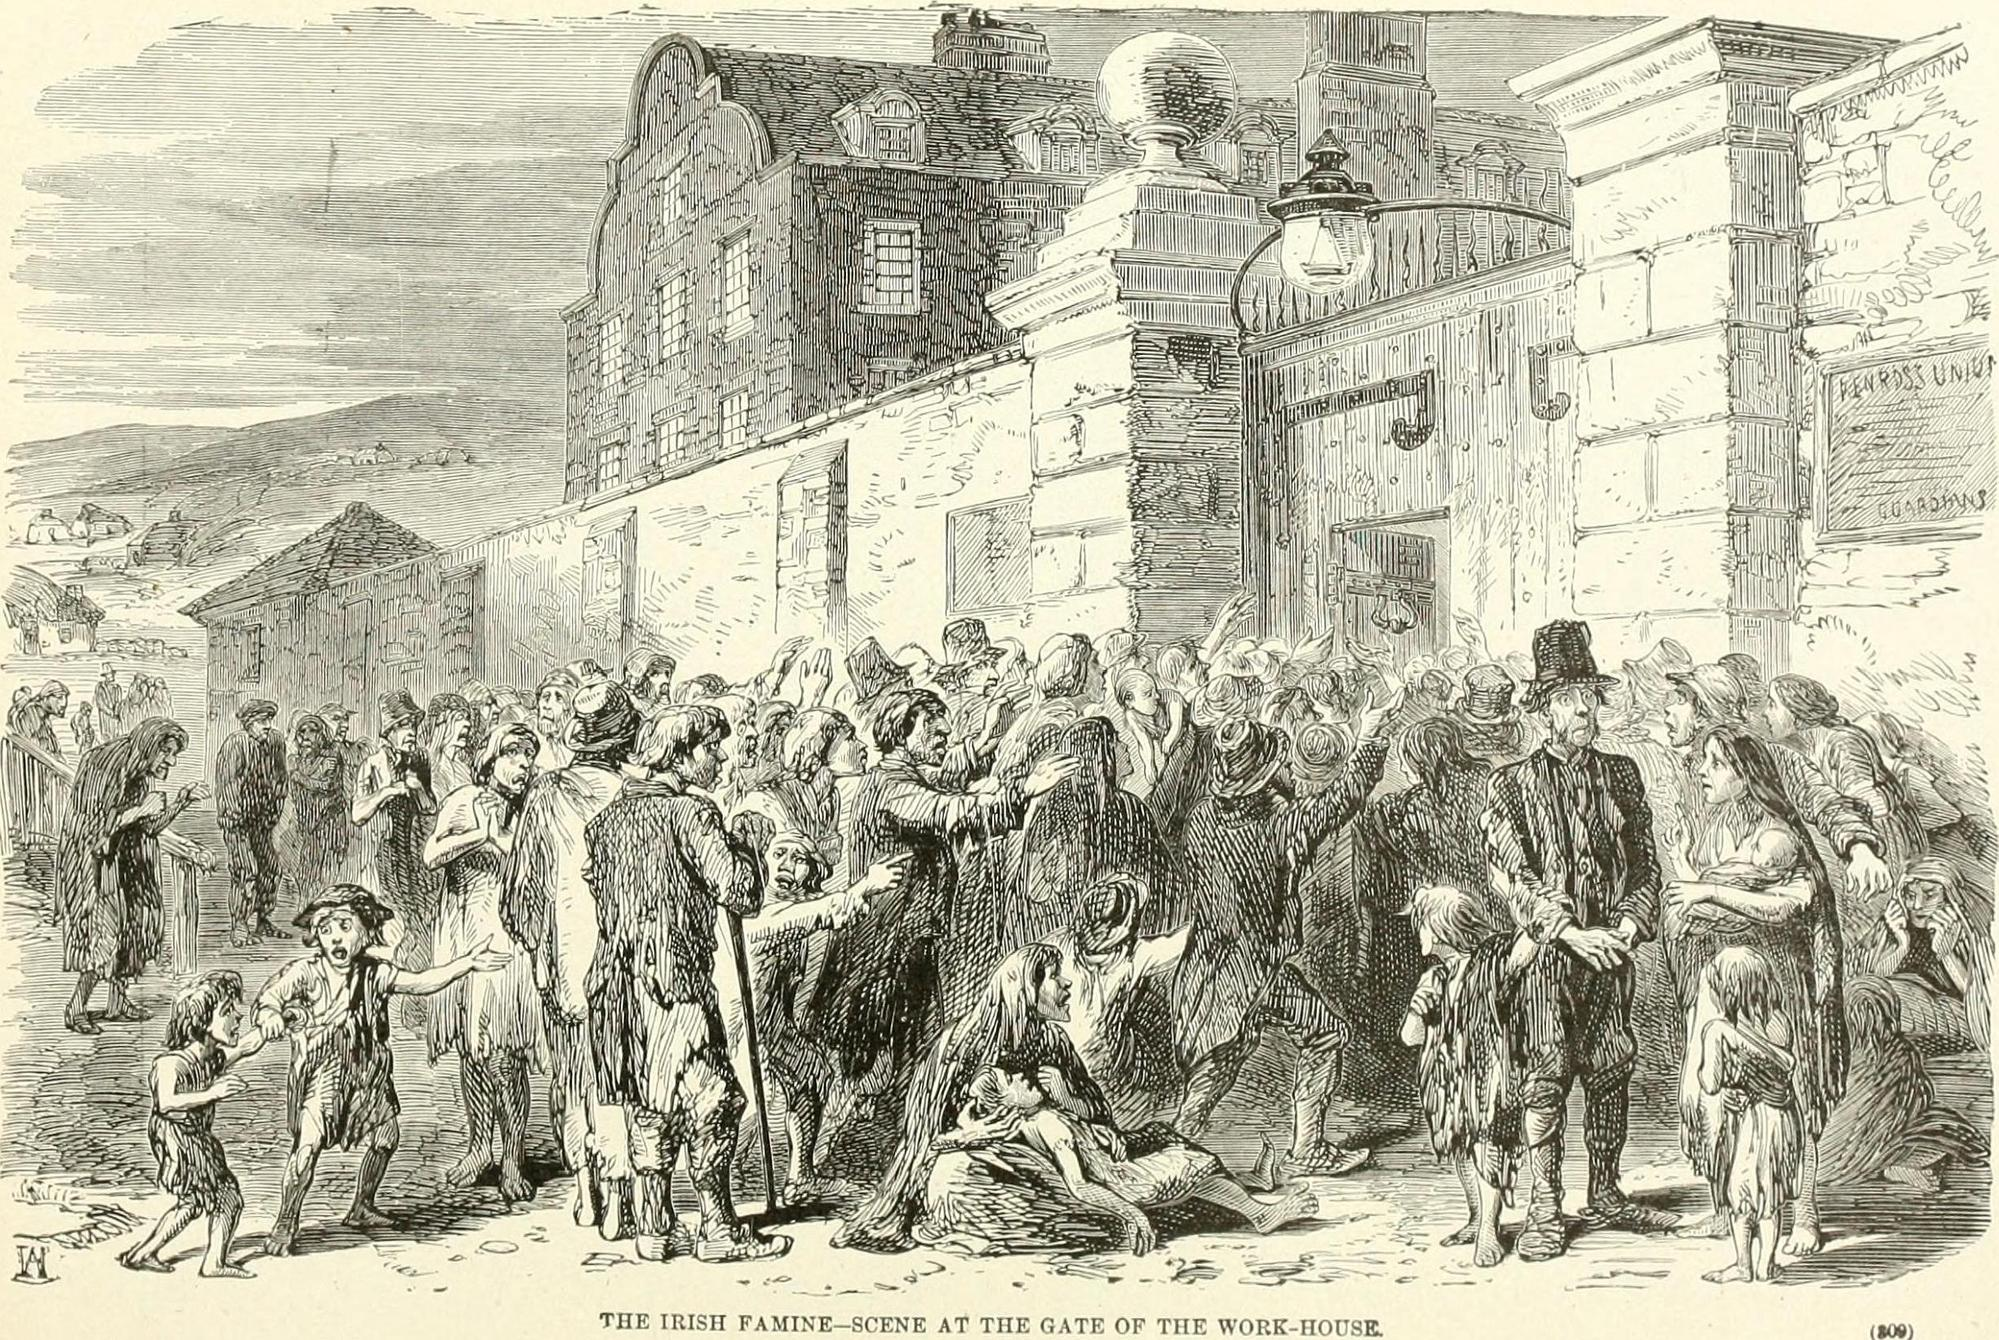 Scene at the gate of the workhouse, c. 1846. From Ridpath's history of the world : being an account of the principal events in the career of the human race from the beginnings of civilization to the present time, comprising the development of social instititions and the story of all nations. Publisher: Cincinnati, Ohio : Jones Brothers, Year: 1907 (1900s). Author: John Clark Ridpath (1840-1900). No known copyright restrictions.